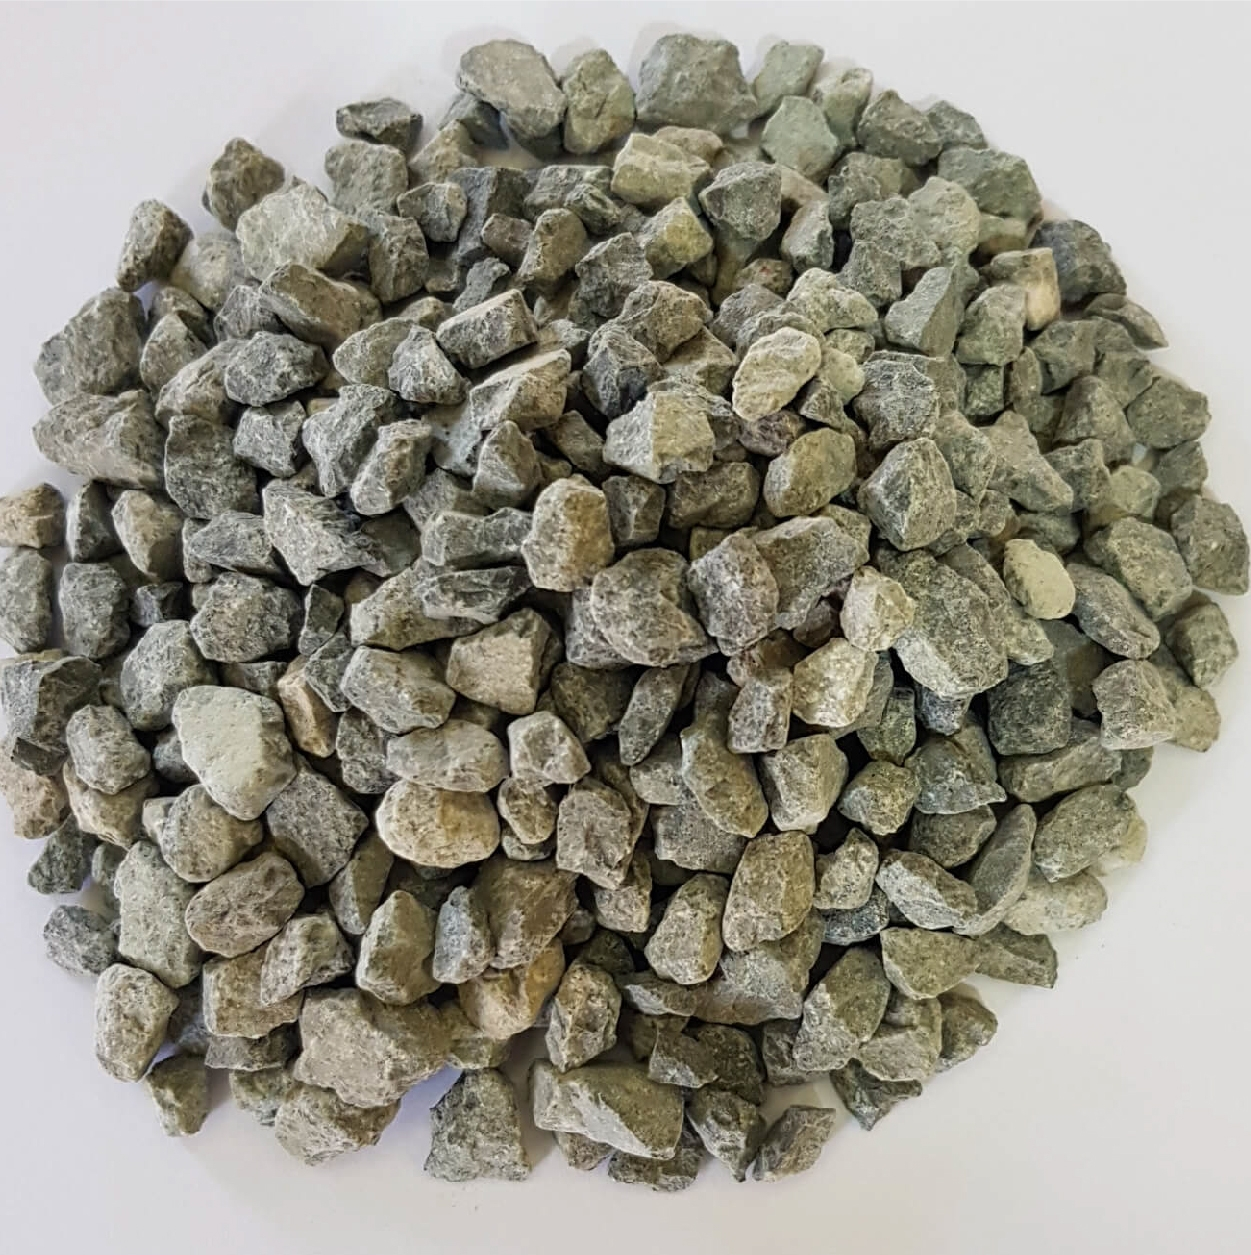 Aggregate industrial raw materials